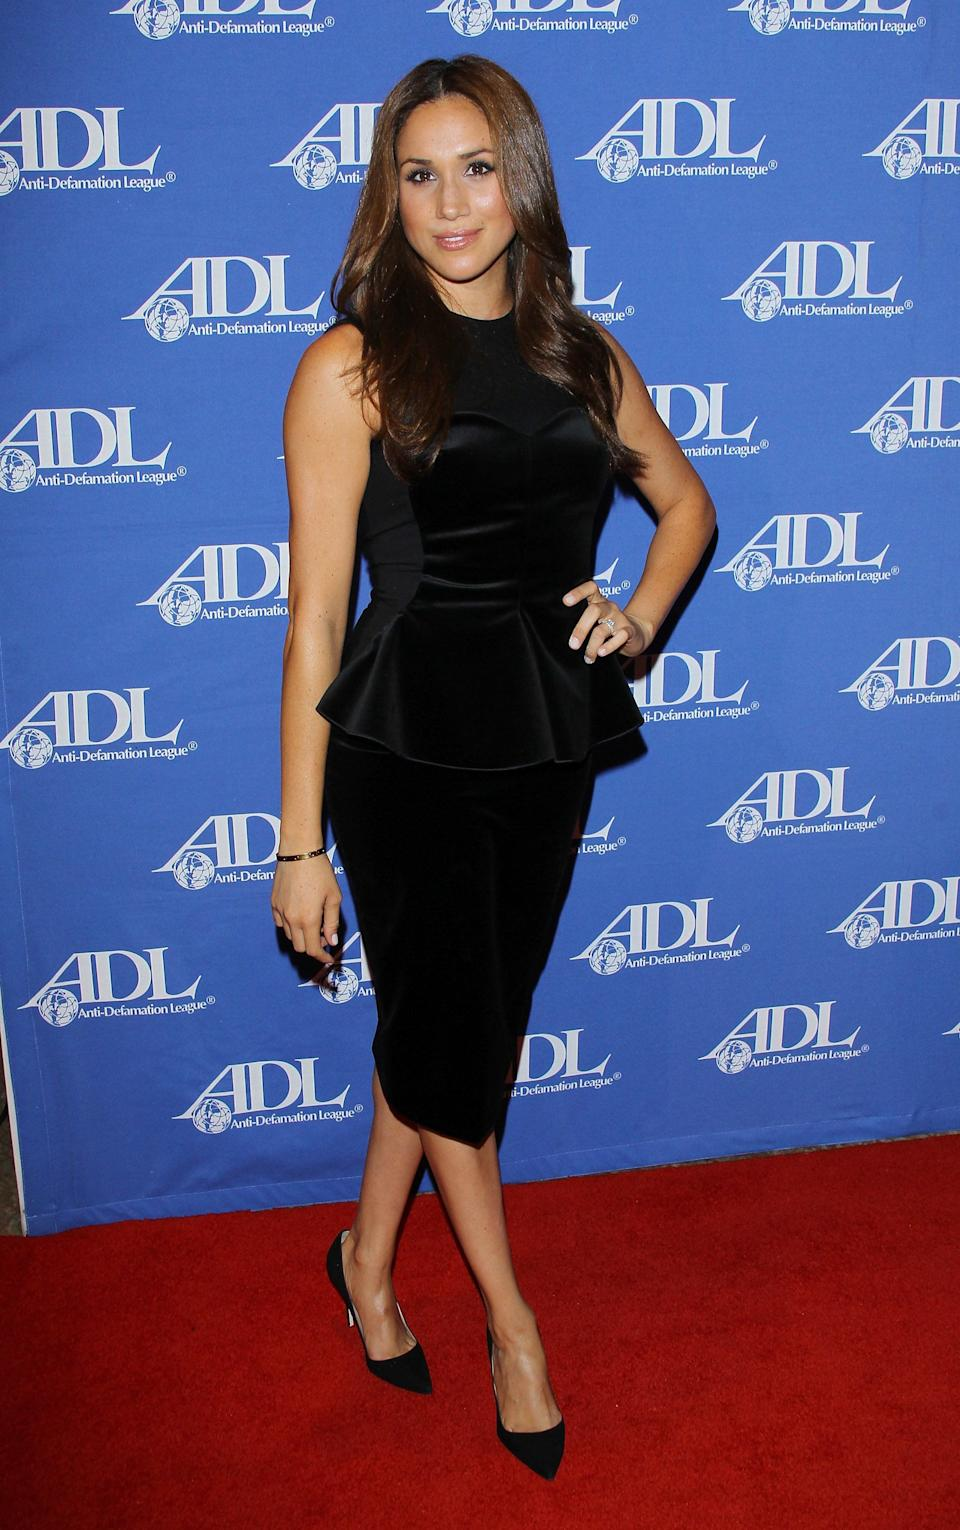 Atthe Anti-Defamation League Entertainment Industry Awards dinner held at The Beverly Hilton hotel in Beverly Hills, California.